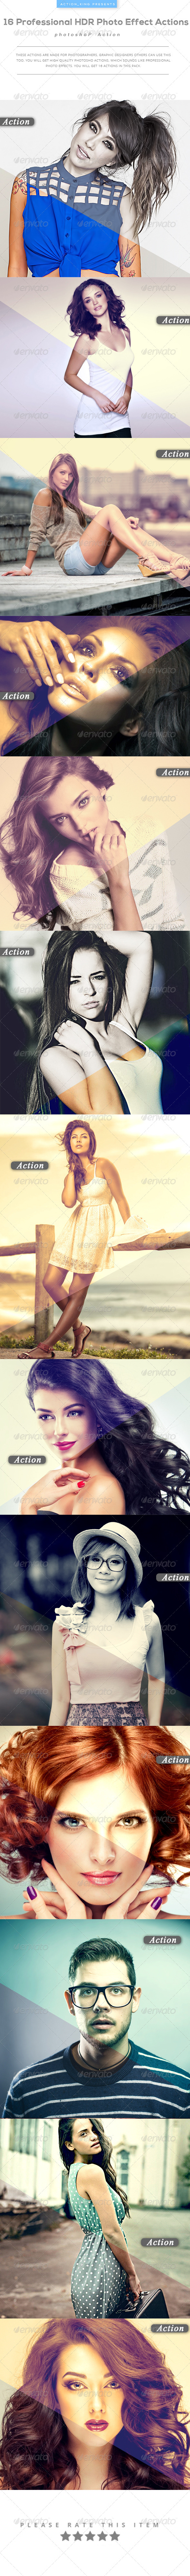 GraphicRiver 16 Professional HDR Photo Effect Actions 8230345